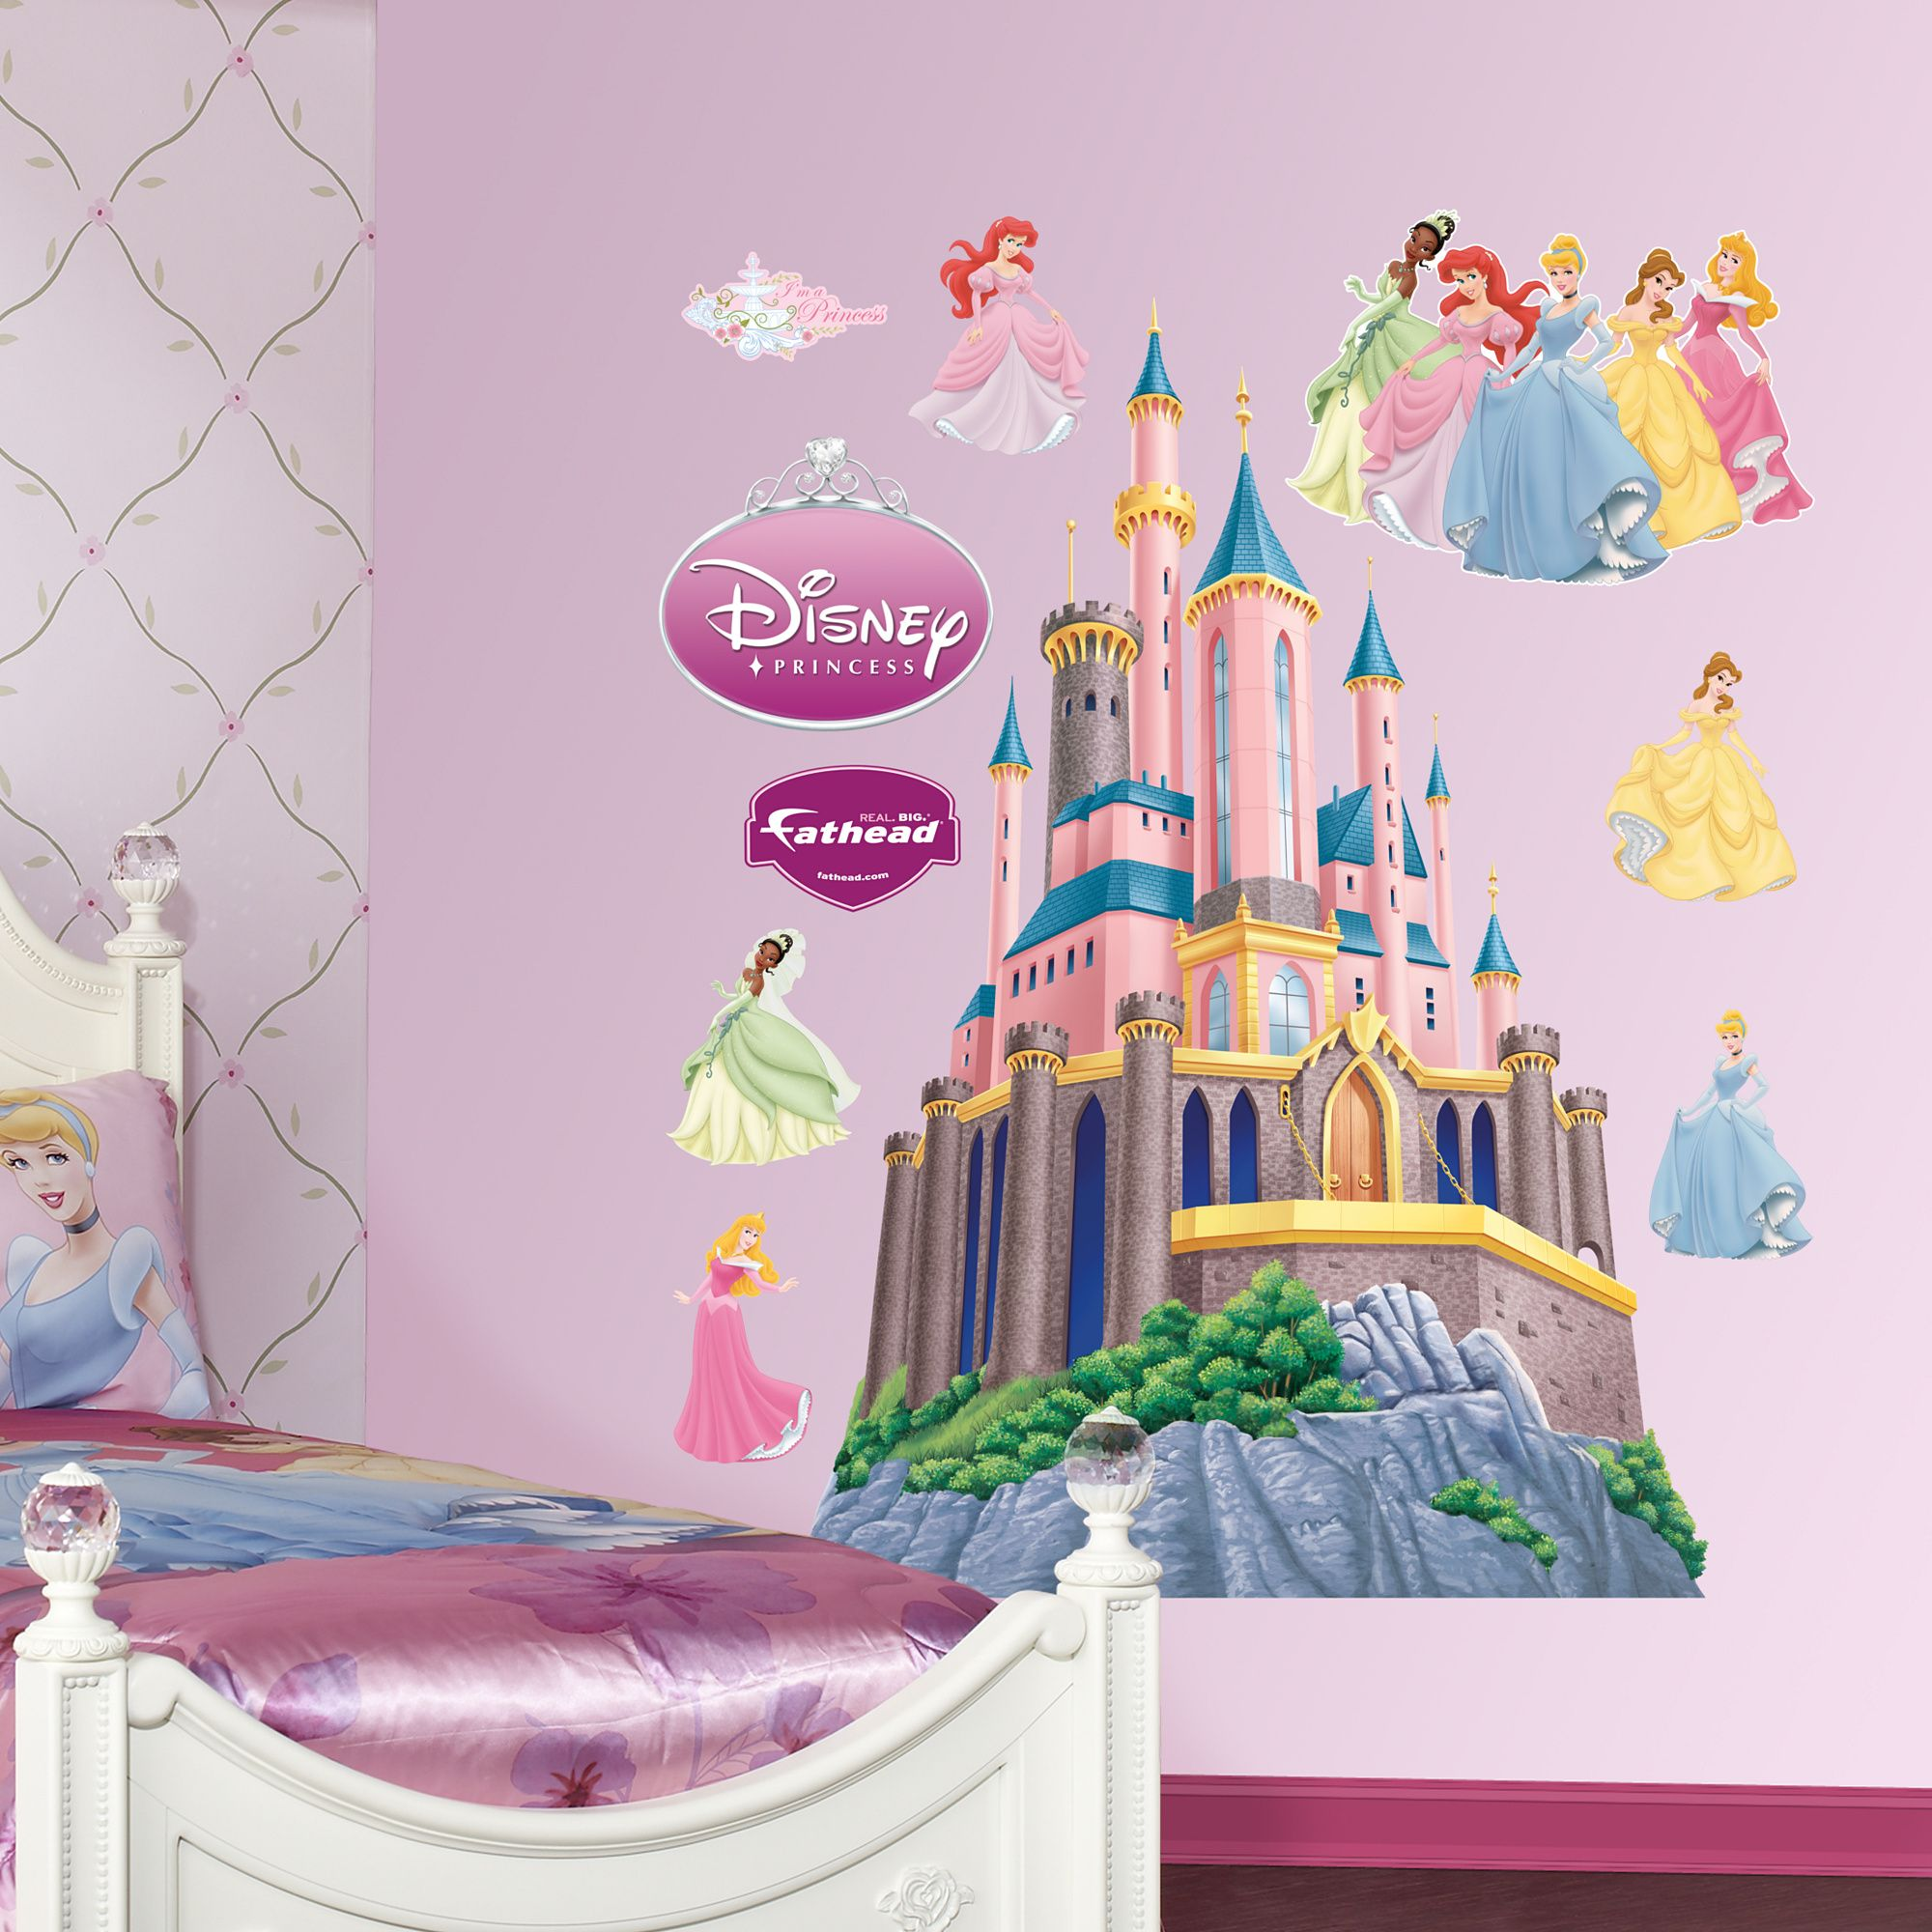 Disney Princess Cinderalla and Bella Wall Stickers Removable ART for Girls Room